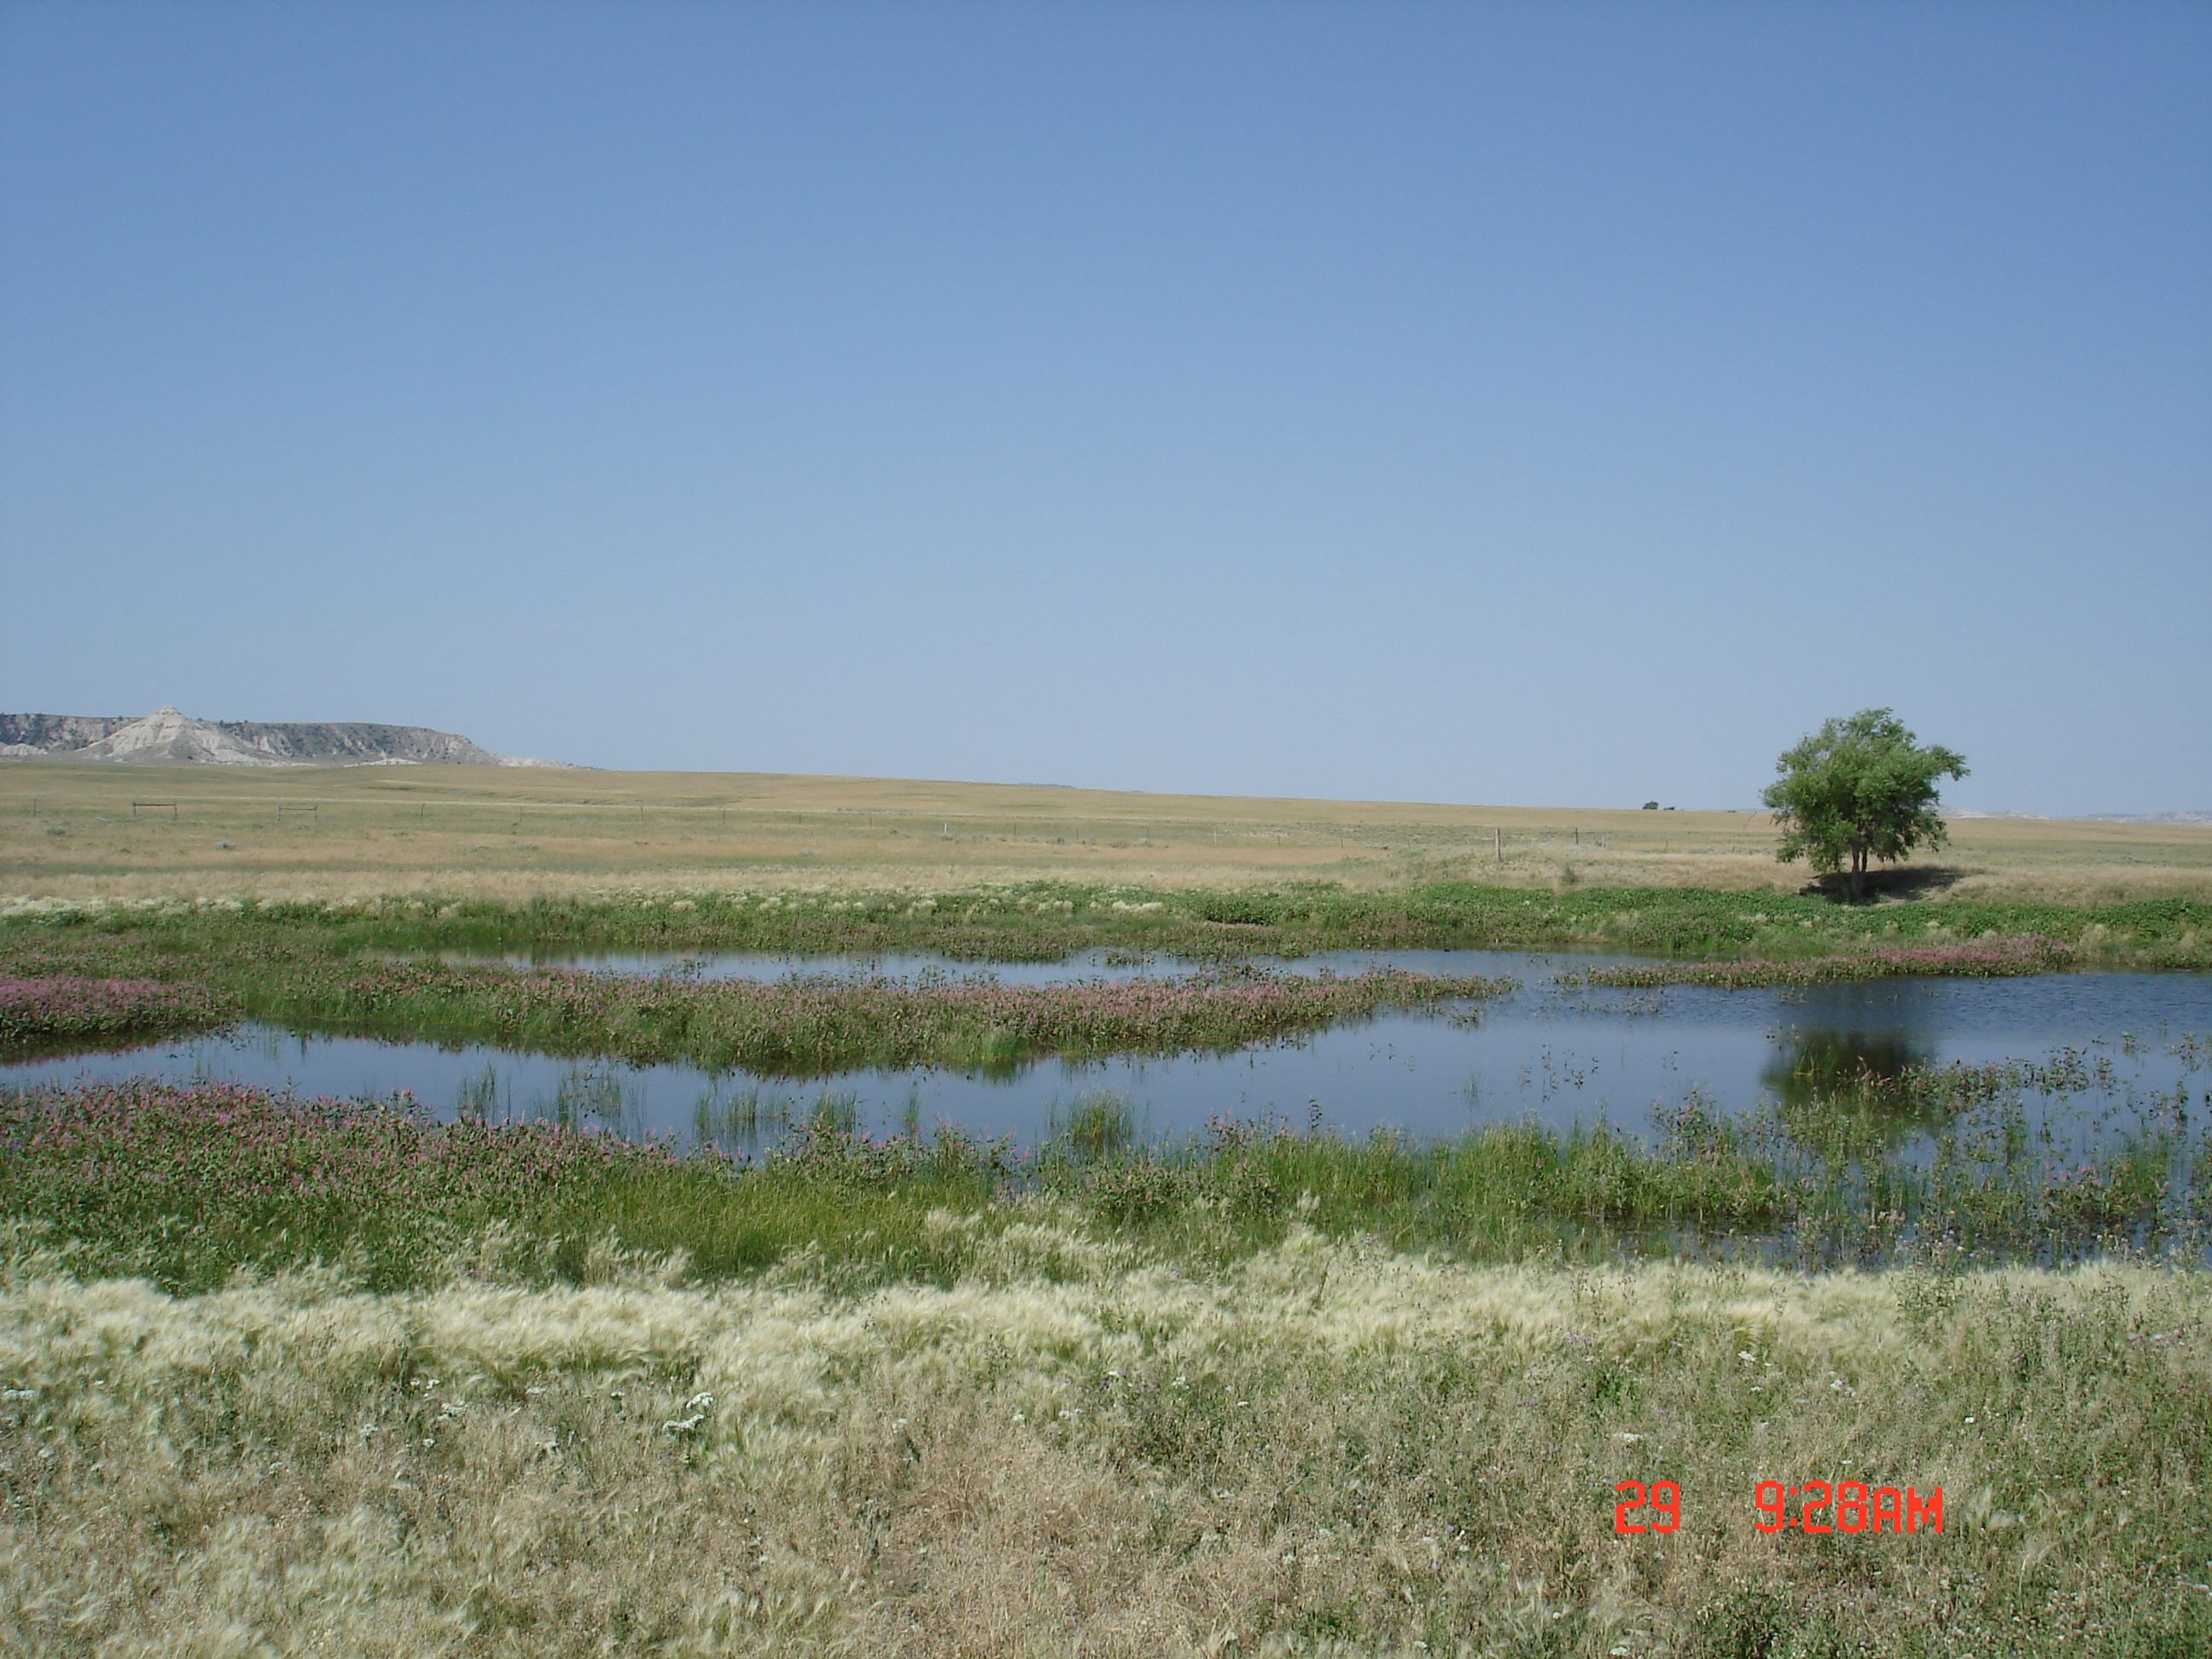 A wetland area at Oglala National Grassland